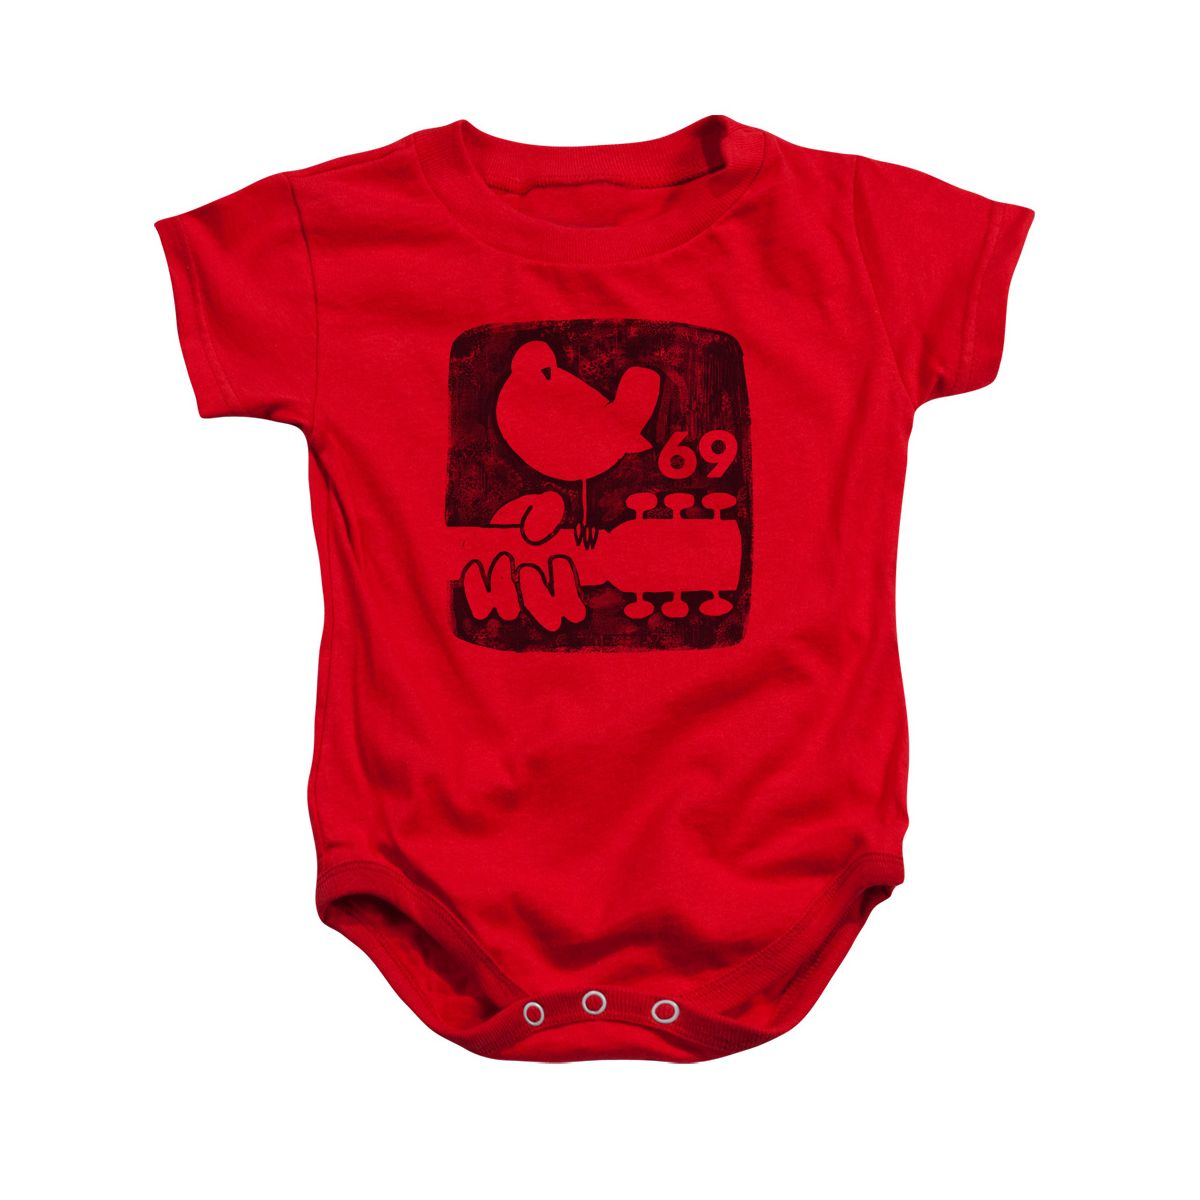 Woodstock Summer 69 Red Infant Snapsuit